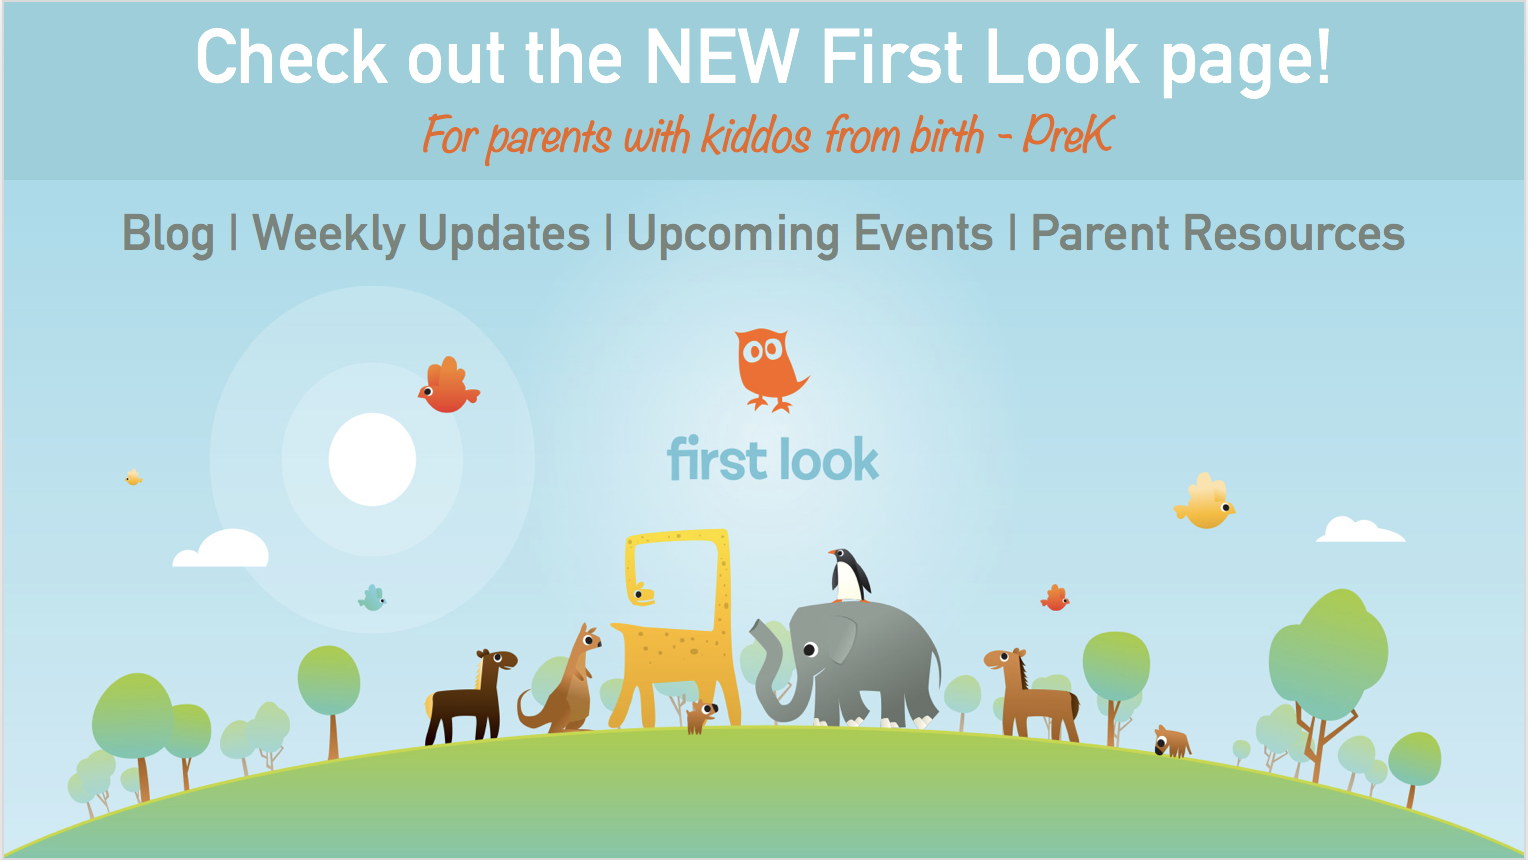 Visit the new First Look page!